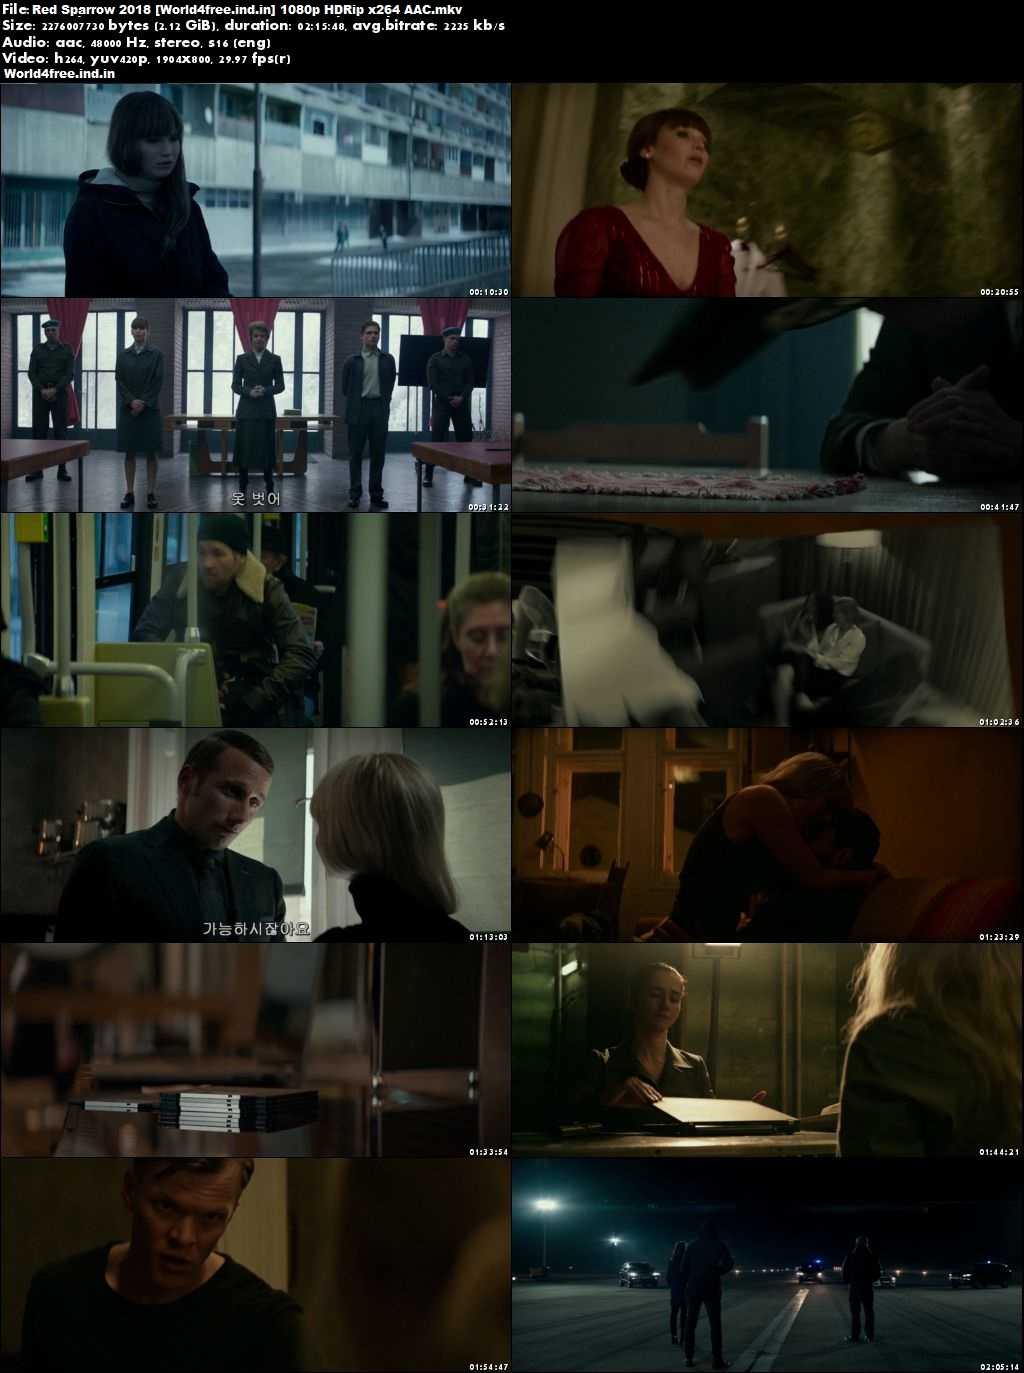 Red Sparrow 2018 worldfree4u Full HDRip Hollywood Dual Audio Movie Download